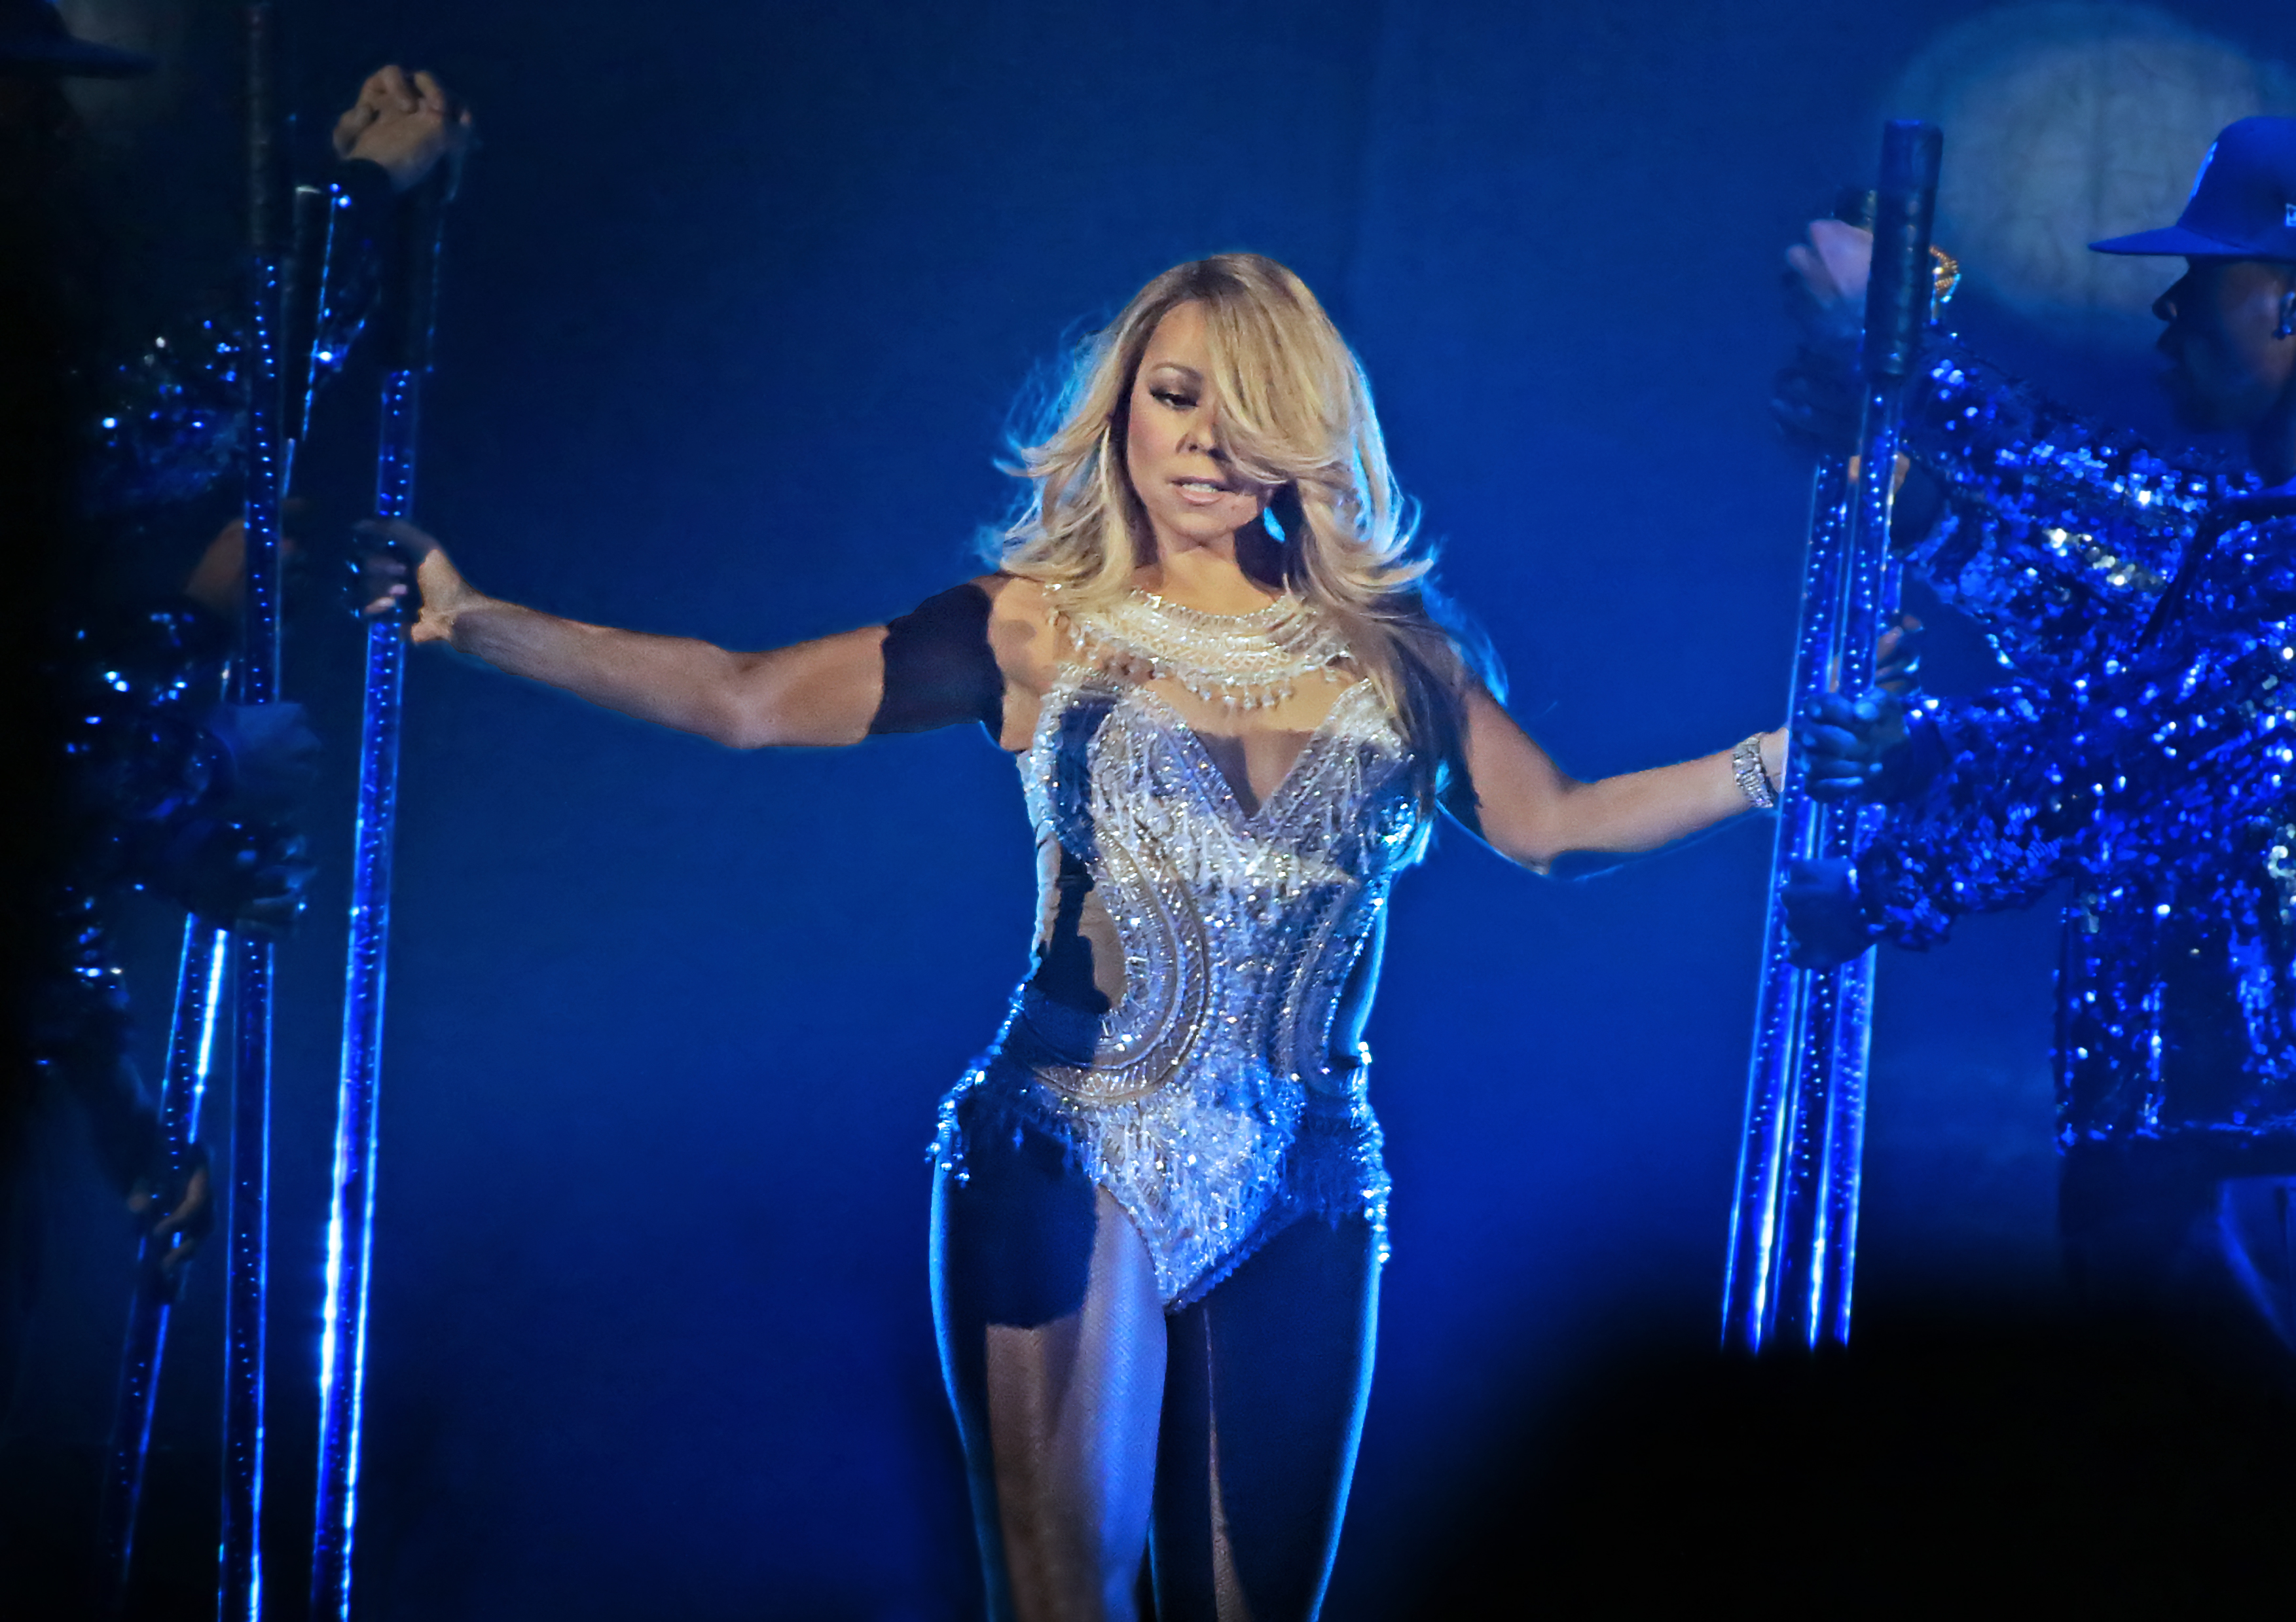 Mariah Carey Performing on Her 'Sweet Sweet Fantasy Tour' at Manchester Arena Featuring: Mariah Carey Where: Manchester, United Kingdom When: 18 Mar 2016 Credit: Sakura/WENN.com